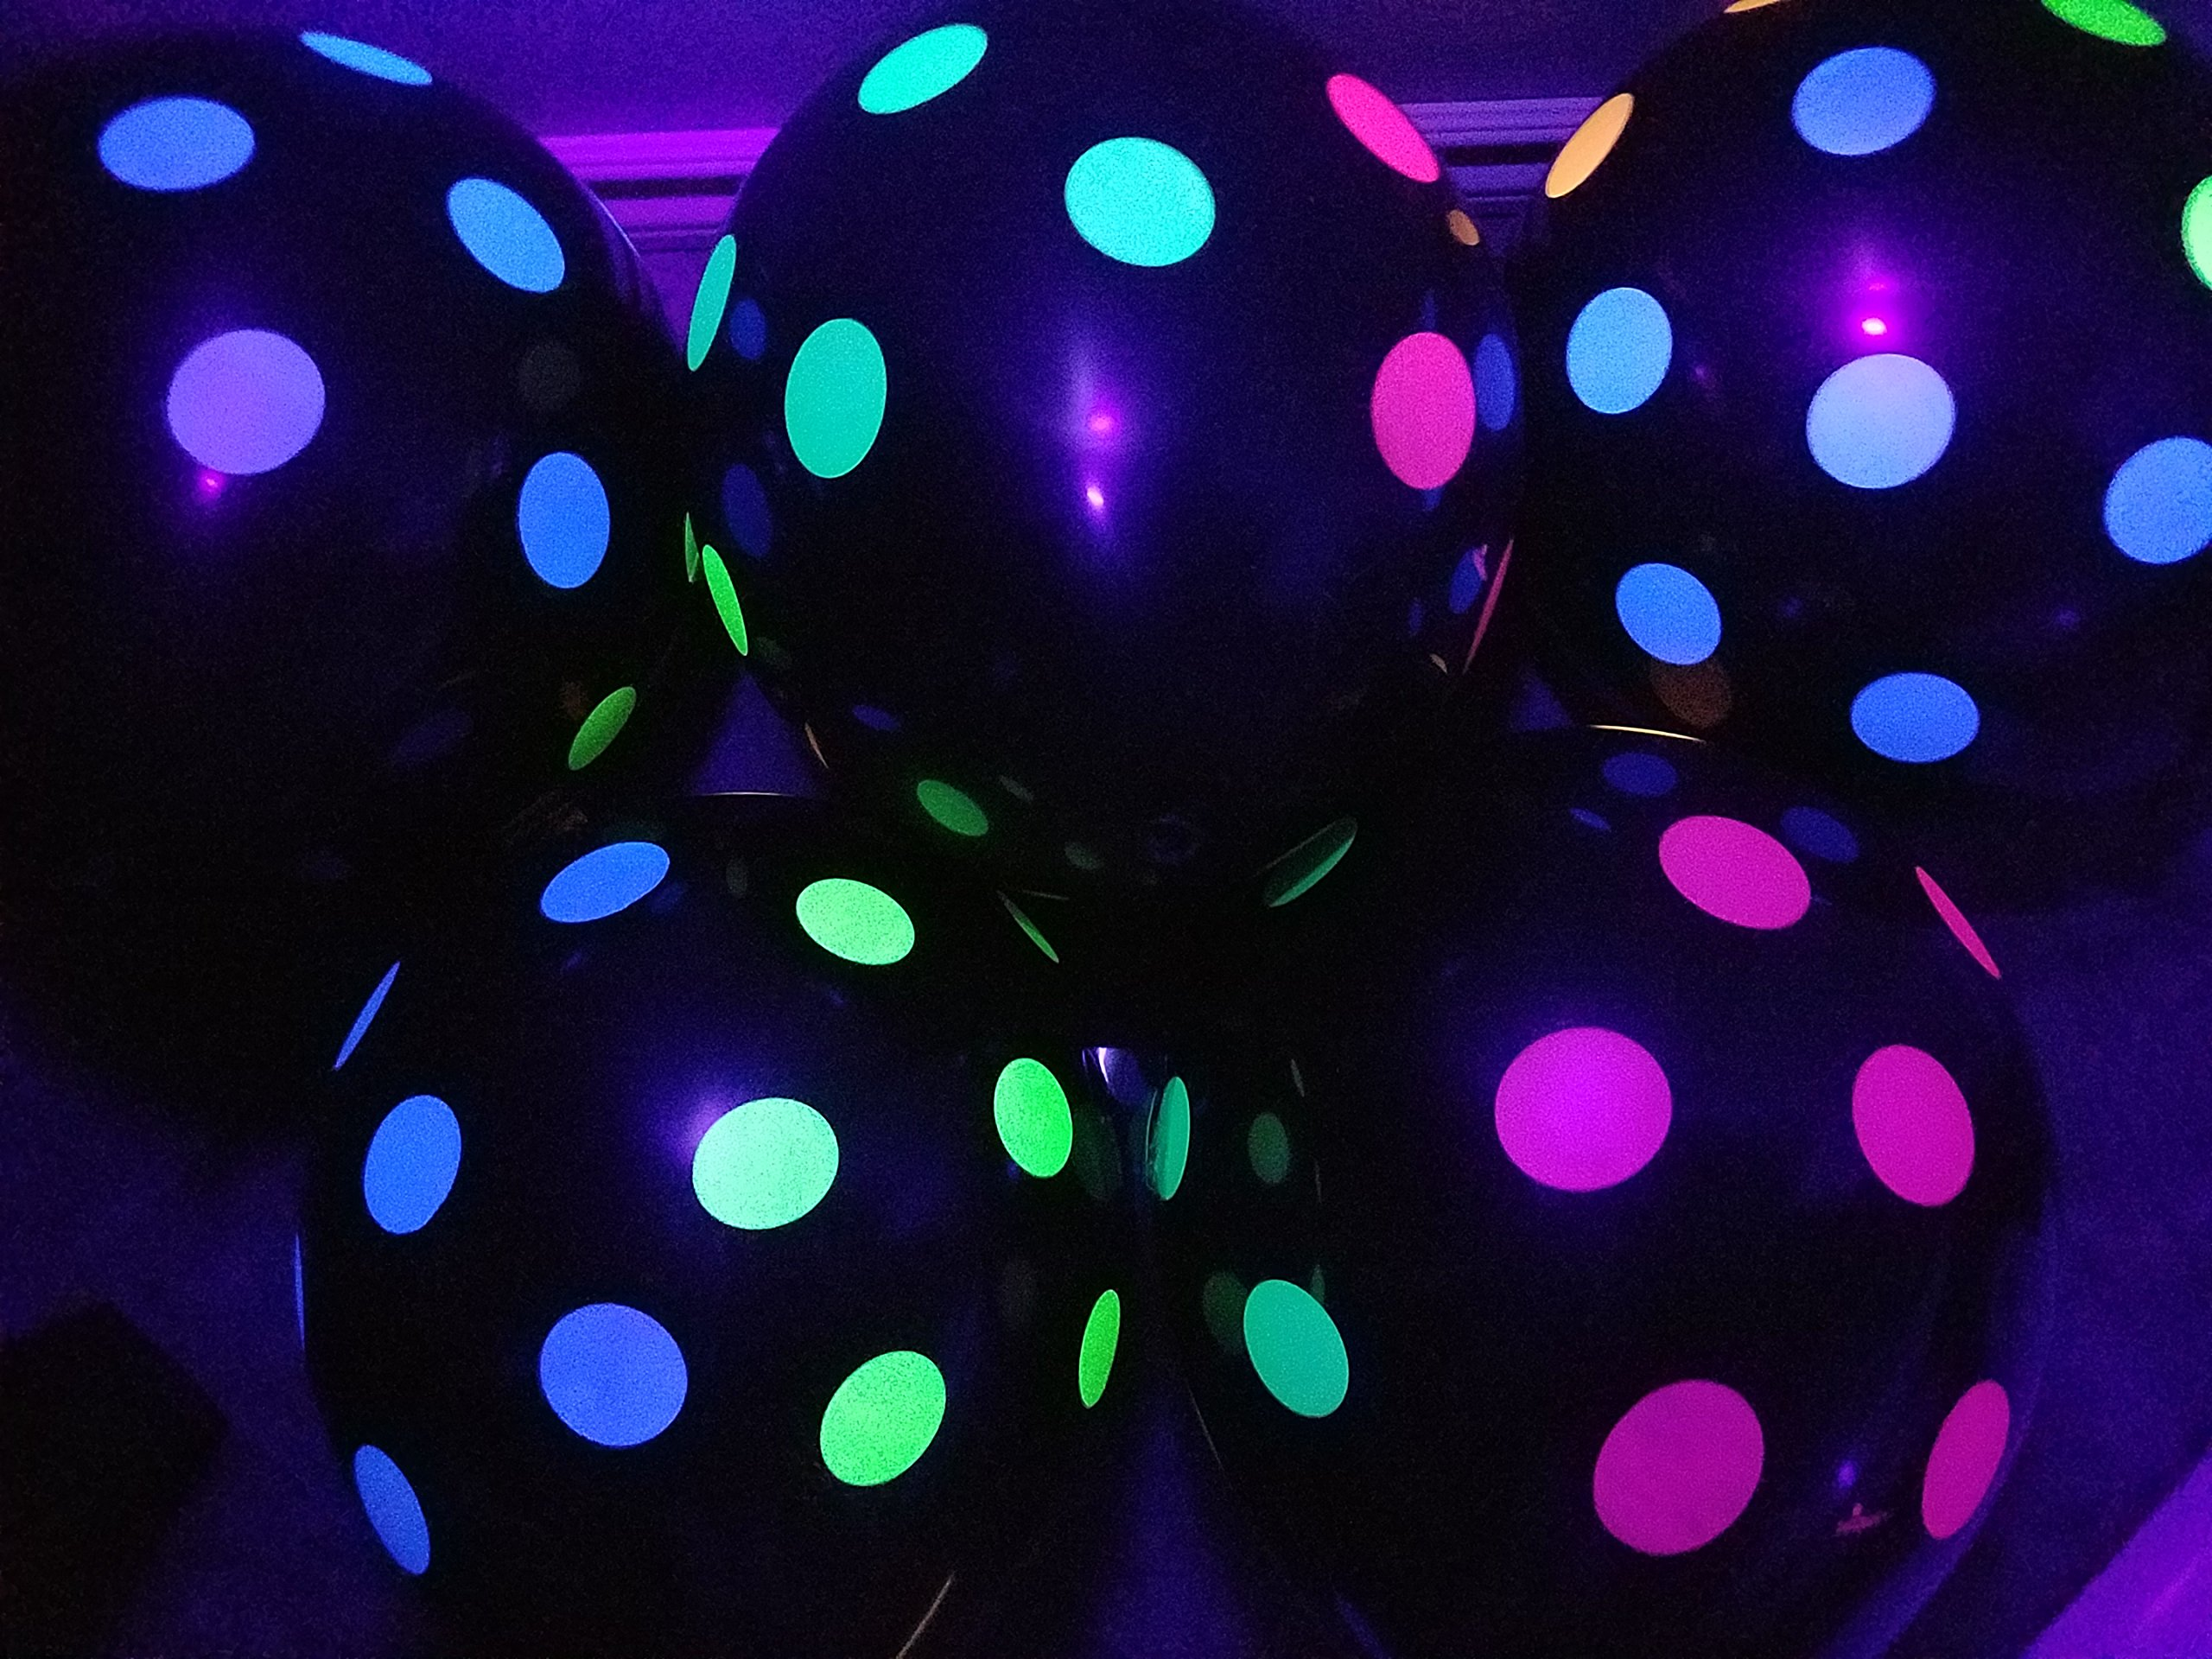 Blacklight Party Balloons - Black with Neon Polka Dots that Glow in the Dark under Blacklight - 25 Pack of 11 inch Latex Balloons